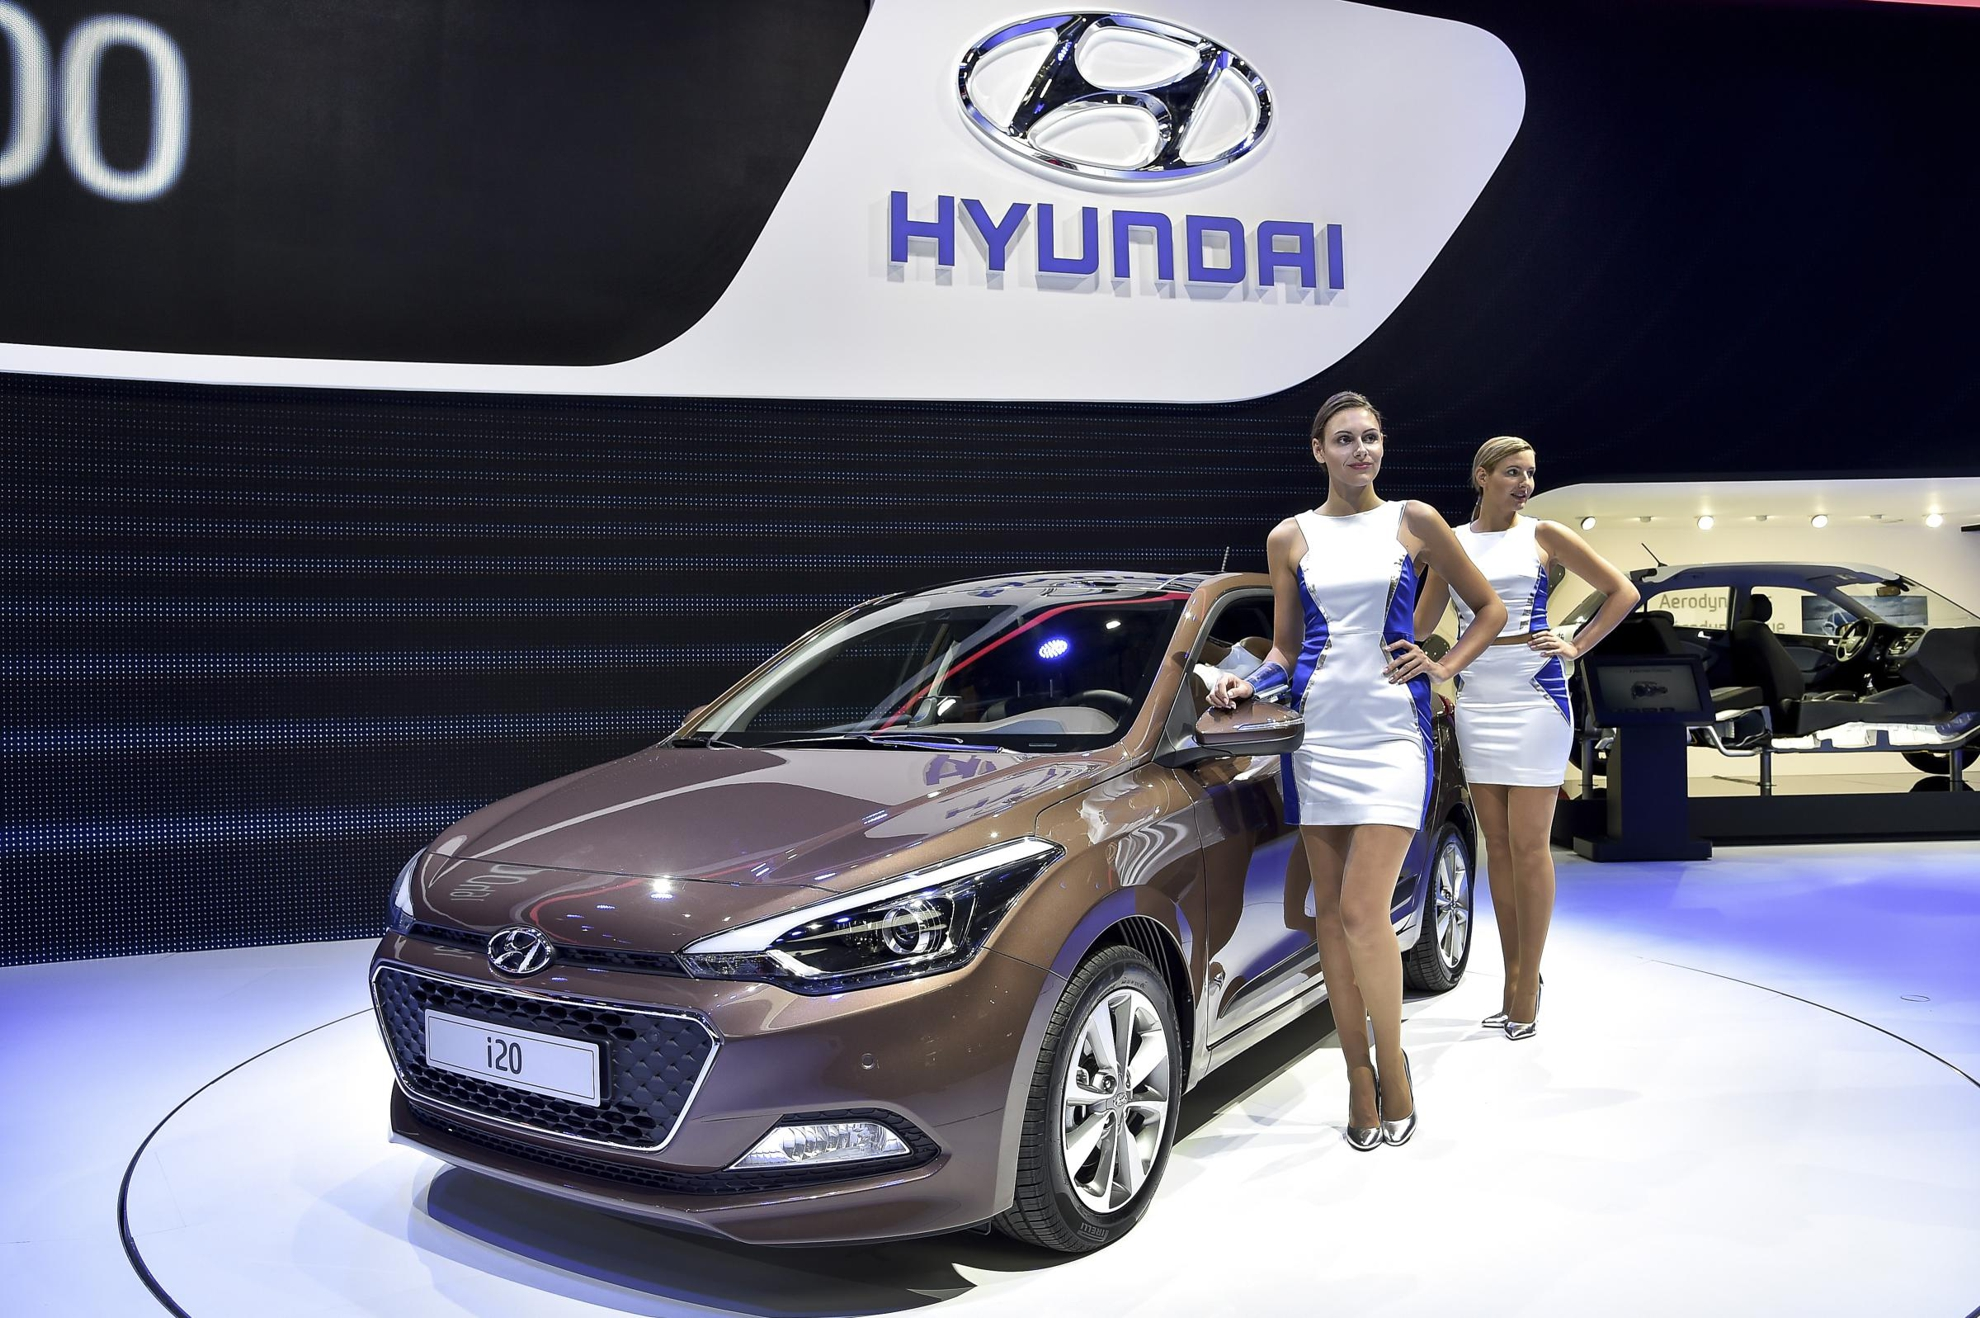 HYUNDAI MOTOR AT PARIS MOTOR SHOW - Hyundai car show